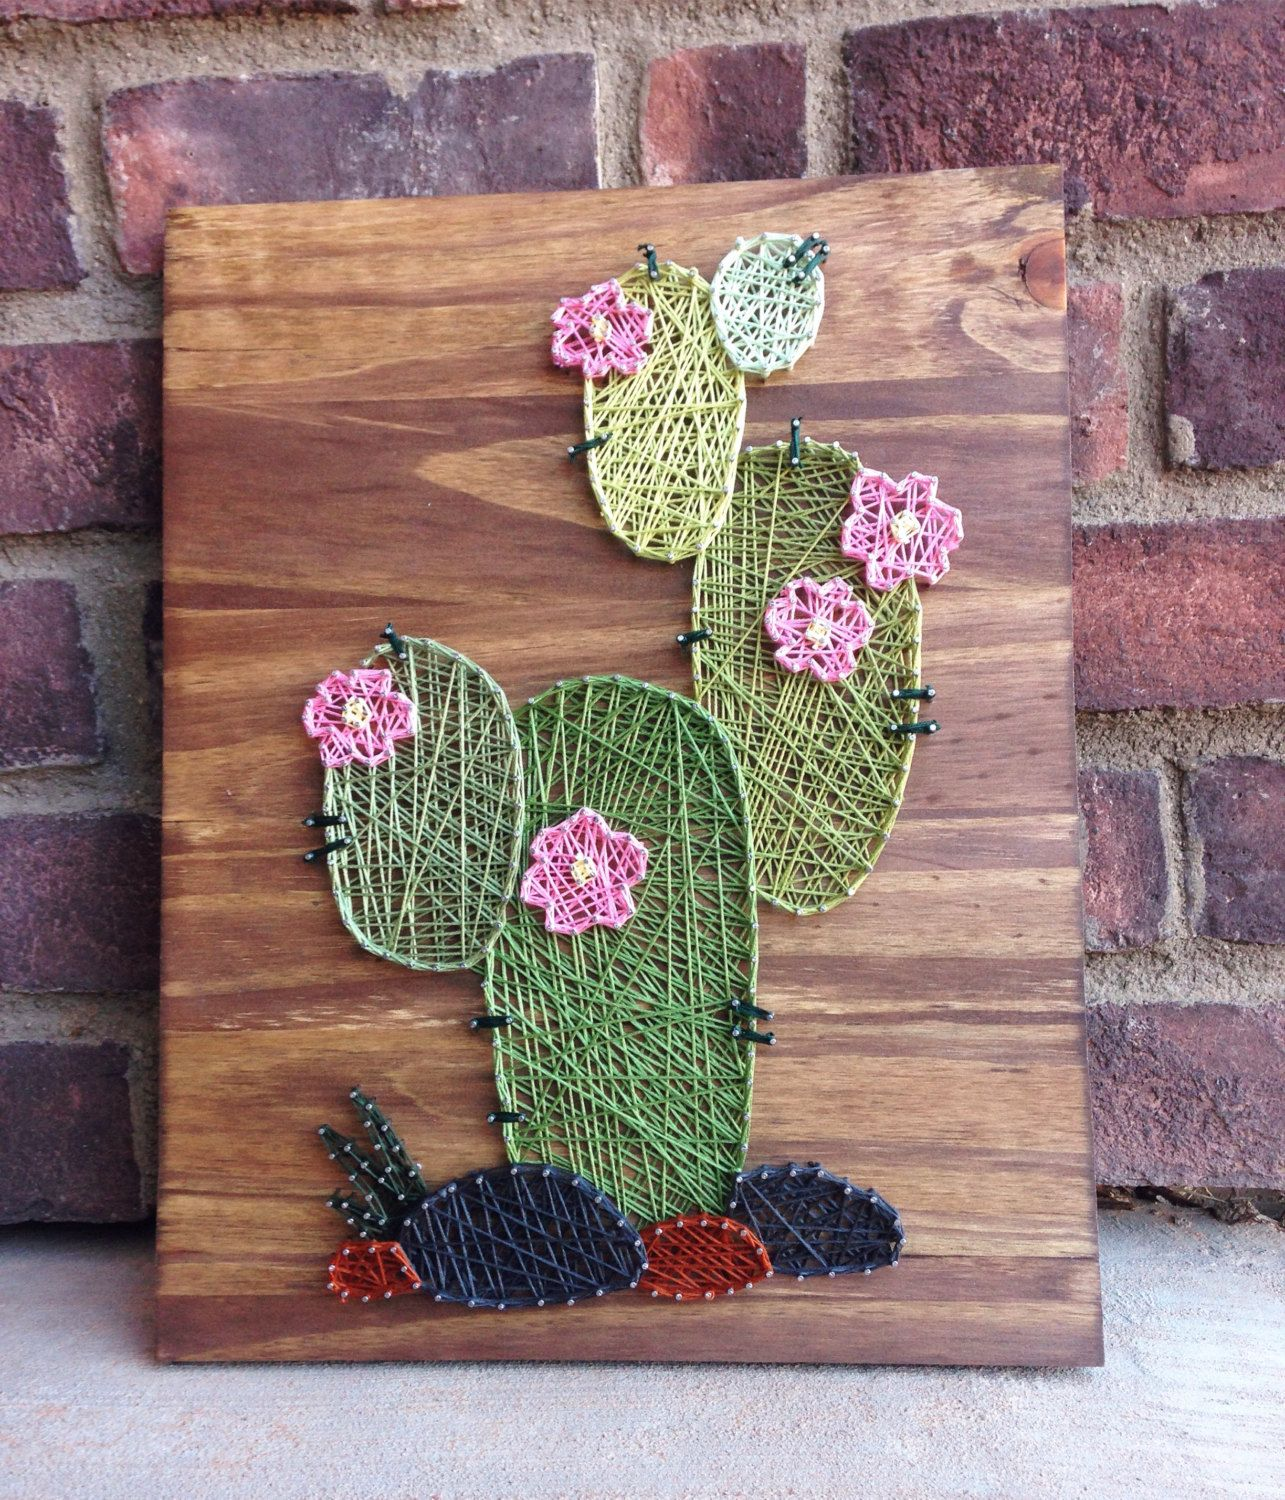 Pin On Prickles And Softies